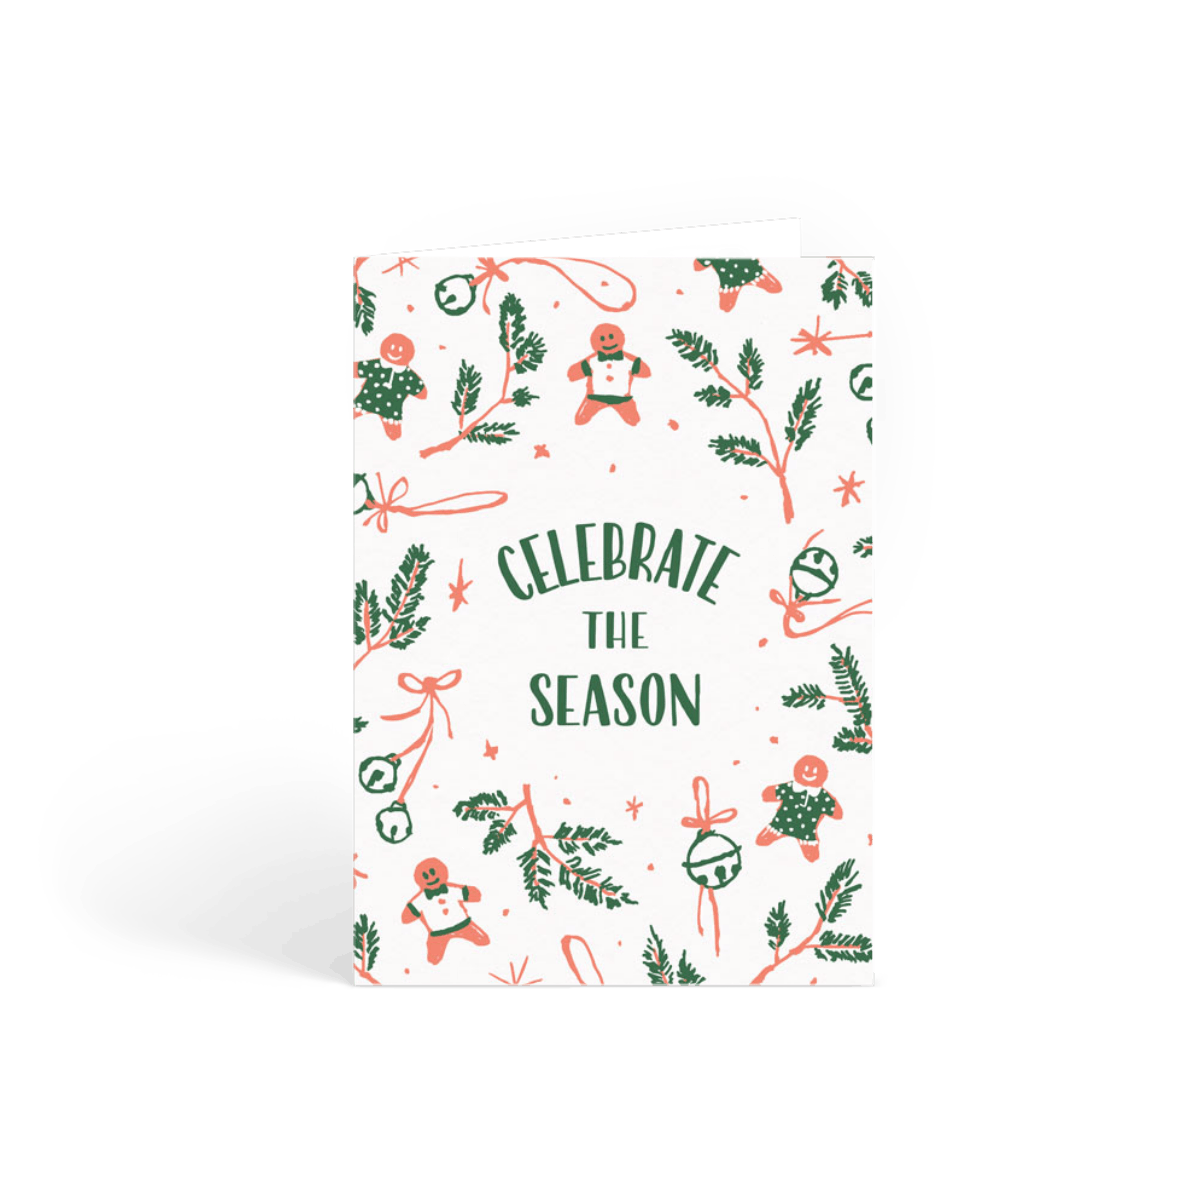 Https%3a%2f%2fwww.papier.com%2fproduct image%2f23688%2f2%2fcelebrate the season 5941 front 1497528014.png?ixlib=rb 1.1